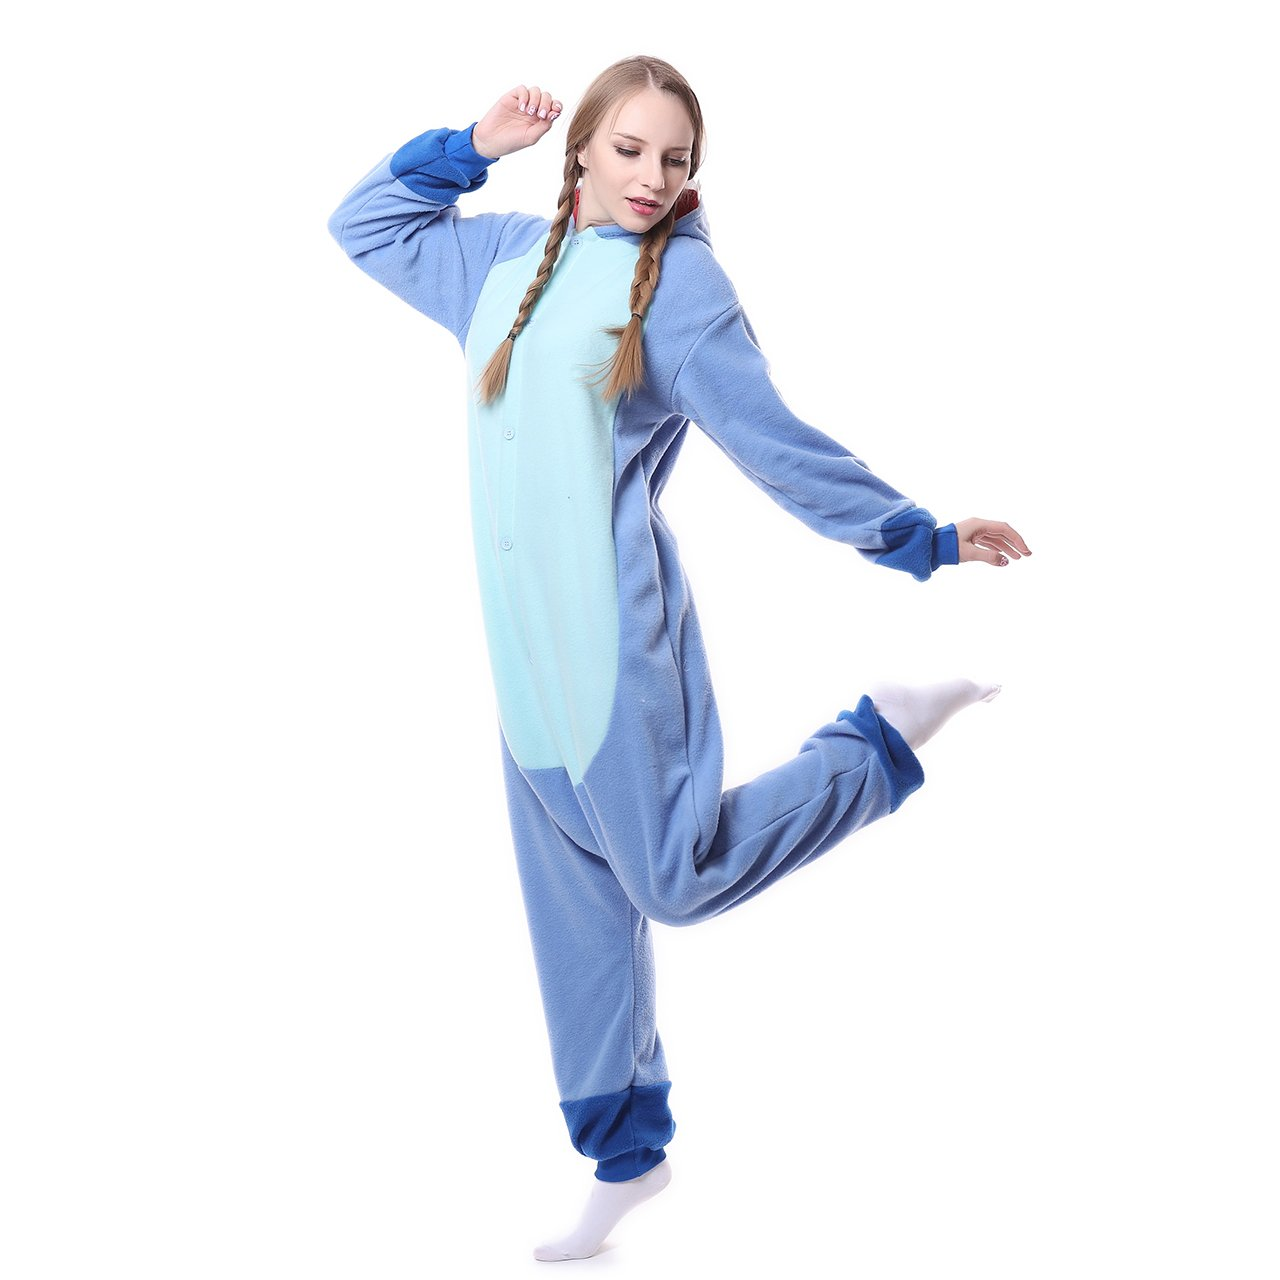 MEILIS Cartoon Sleepsuit Costume Cosplay Lounge Wear Kigurumi Onesie Pajamas Stitch,Birthday or Christmas Gift,Blue by MEILIS (Image #4)